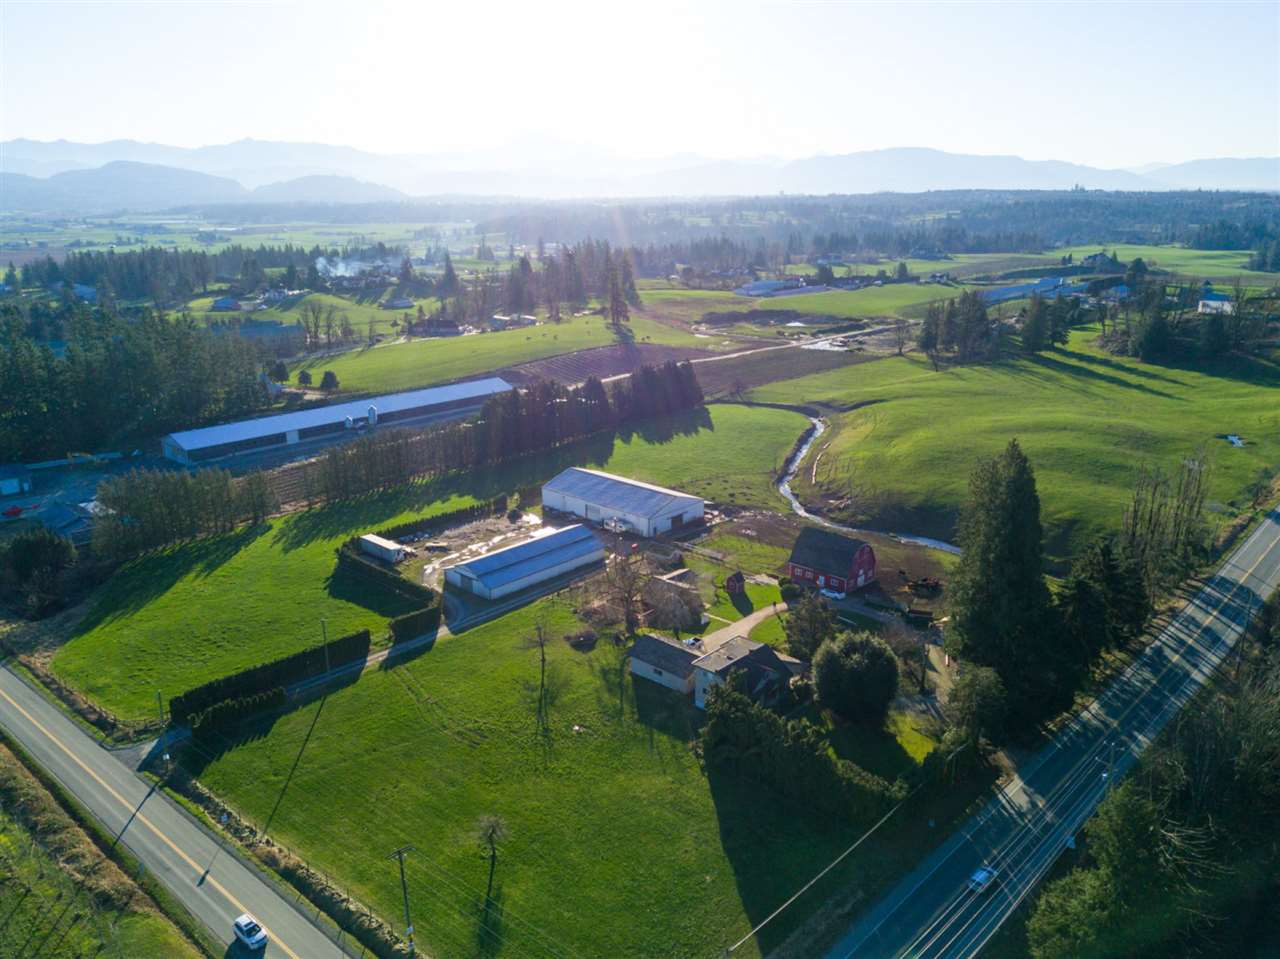 Spectacular Mt Lehman property! 9.15 acres with lush pastures, Mt Baker views, 3000 sq ft family home, a 2nd 3 bdrm home, classic hip roof barn & 13,000 sq ft of shop/storage space. This corner property provides a high visibility location ideal for a business (winery, farm sales...). Primary home is 5 bdrm, 3 bath 2 storey w/ a bsmt & triple garage, updates include new covered deck, plumbing & electrical, new furnace, 2 gas f/p's. 2nd home is a charming 730 sf, 3 bdrm, completely updated. 34' x 40' hip roof barn w/ full loft. 2 quality metal clad shops - 65' x 120' & 50' x 100' (both 200 amp) w/ sep driveway off Harris Rd. 20' x 23' shop/garage. Beaut creek establishes the S property line, so it does not interfere w/ use of prop.